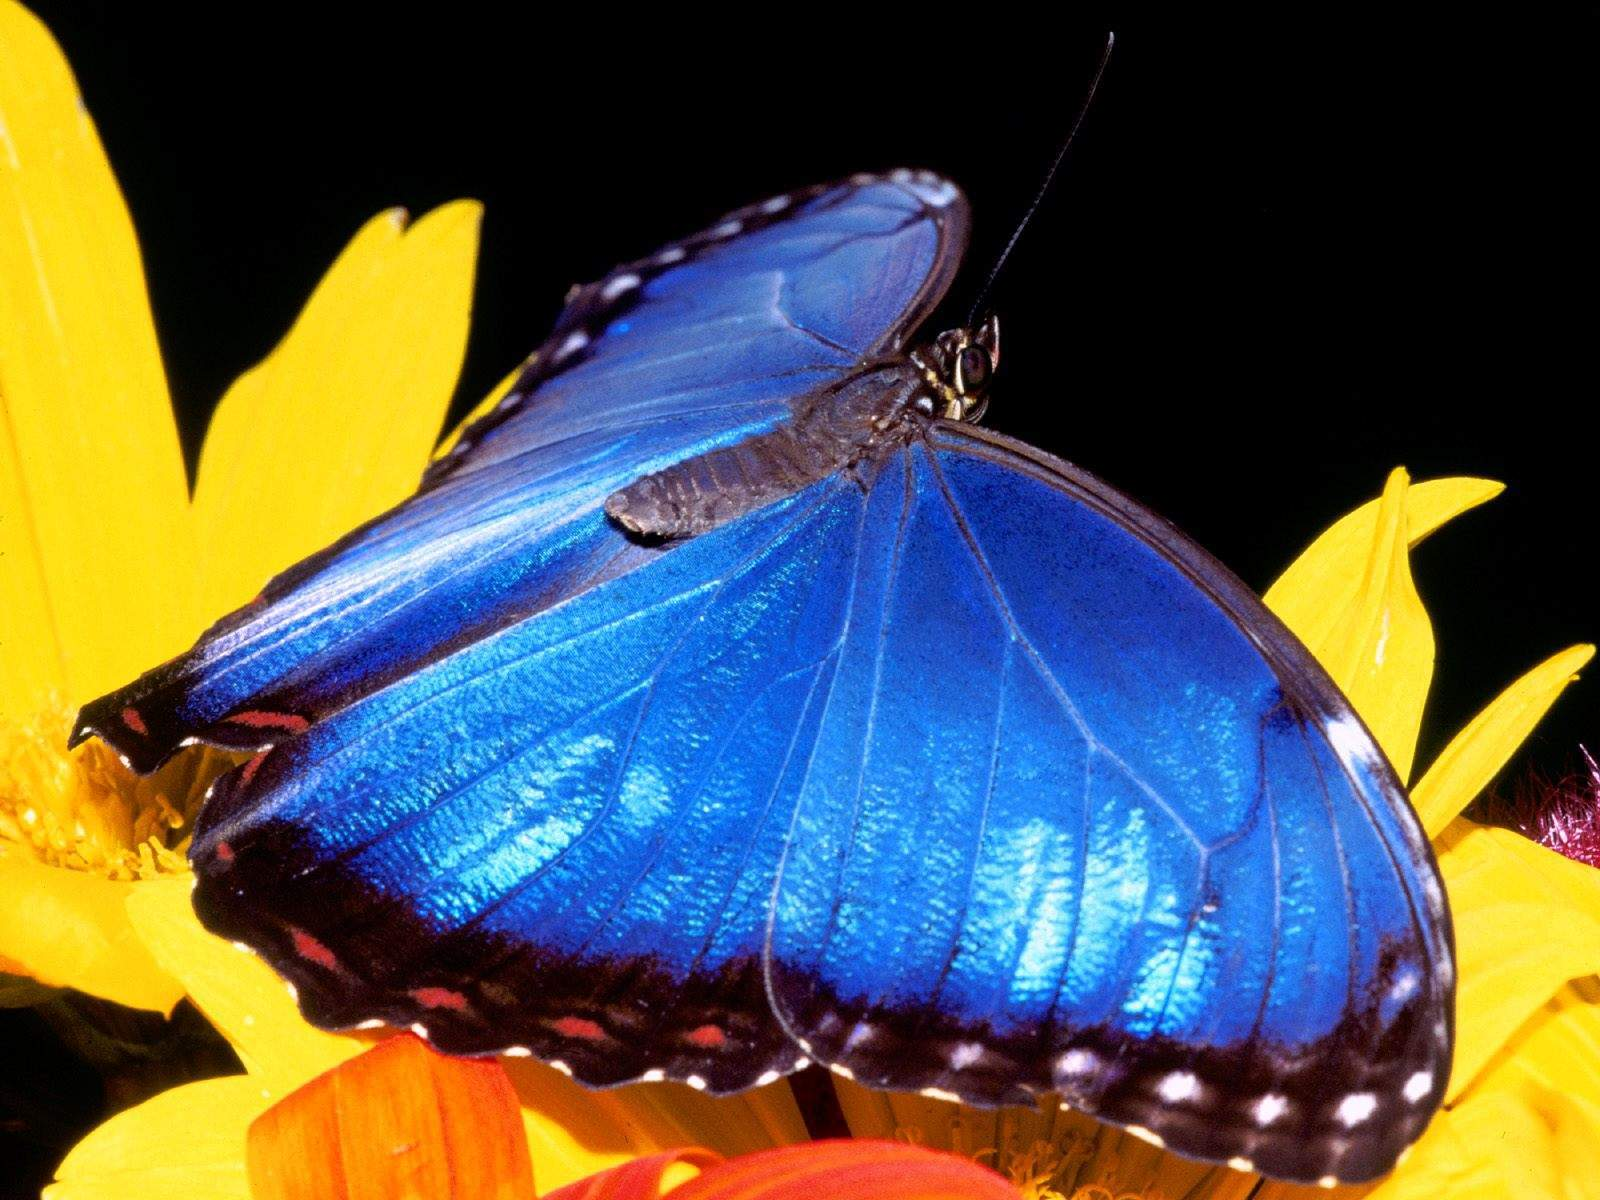 blue morpho butterfly wallpaper hd high resolution backgrounds hd with 1600x1200